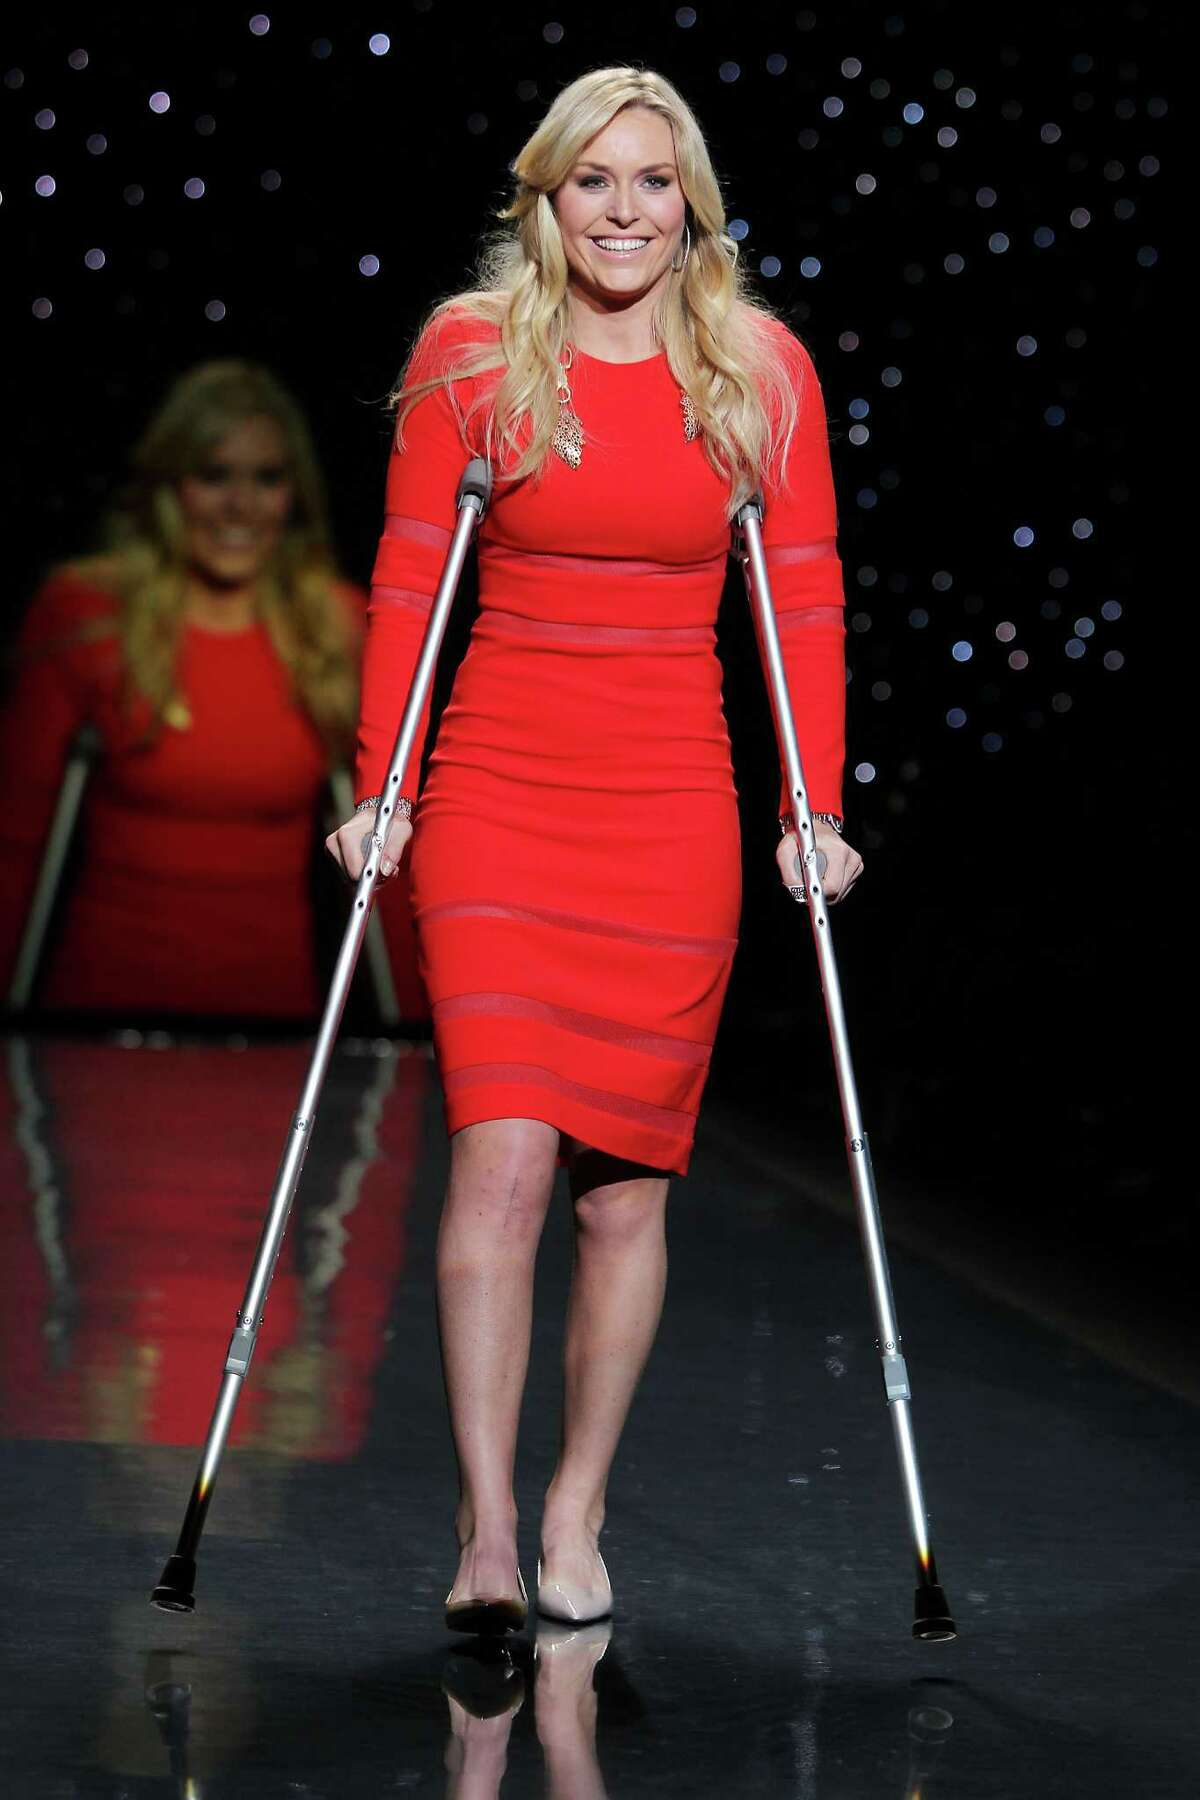 Olympic skier Lindsey Vonn wearing Cynthia Rowley as she participates in the Go Red For Women-The Heart Truth Red Dress Collection show during Fashion Week in New York on Thursday, Feb. 6, 2014.